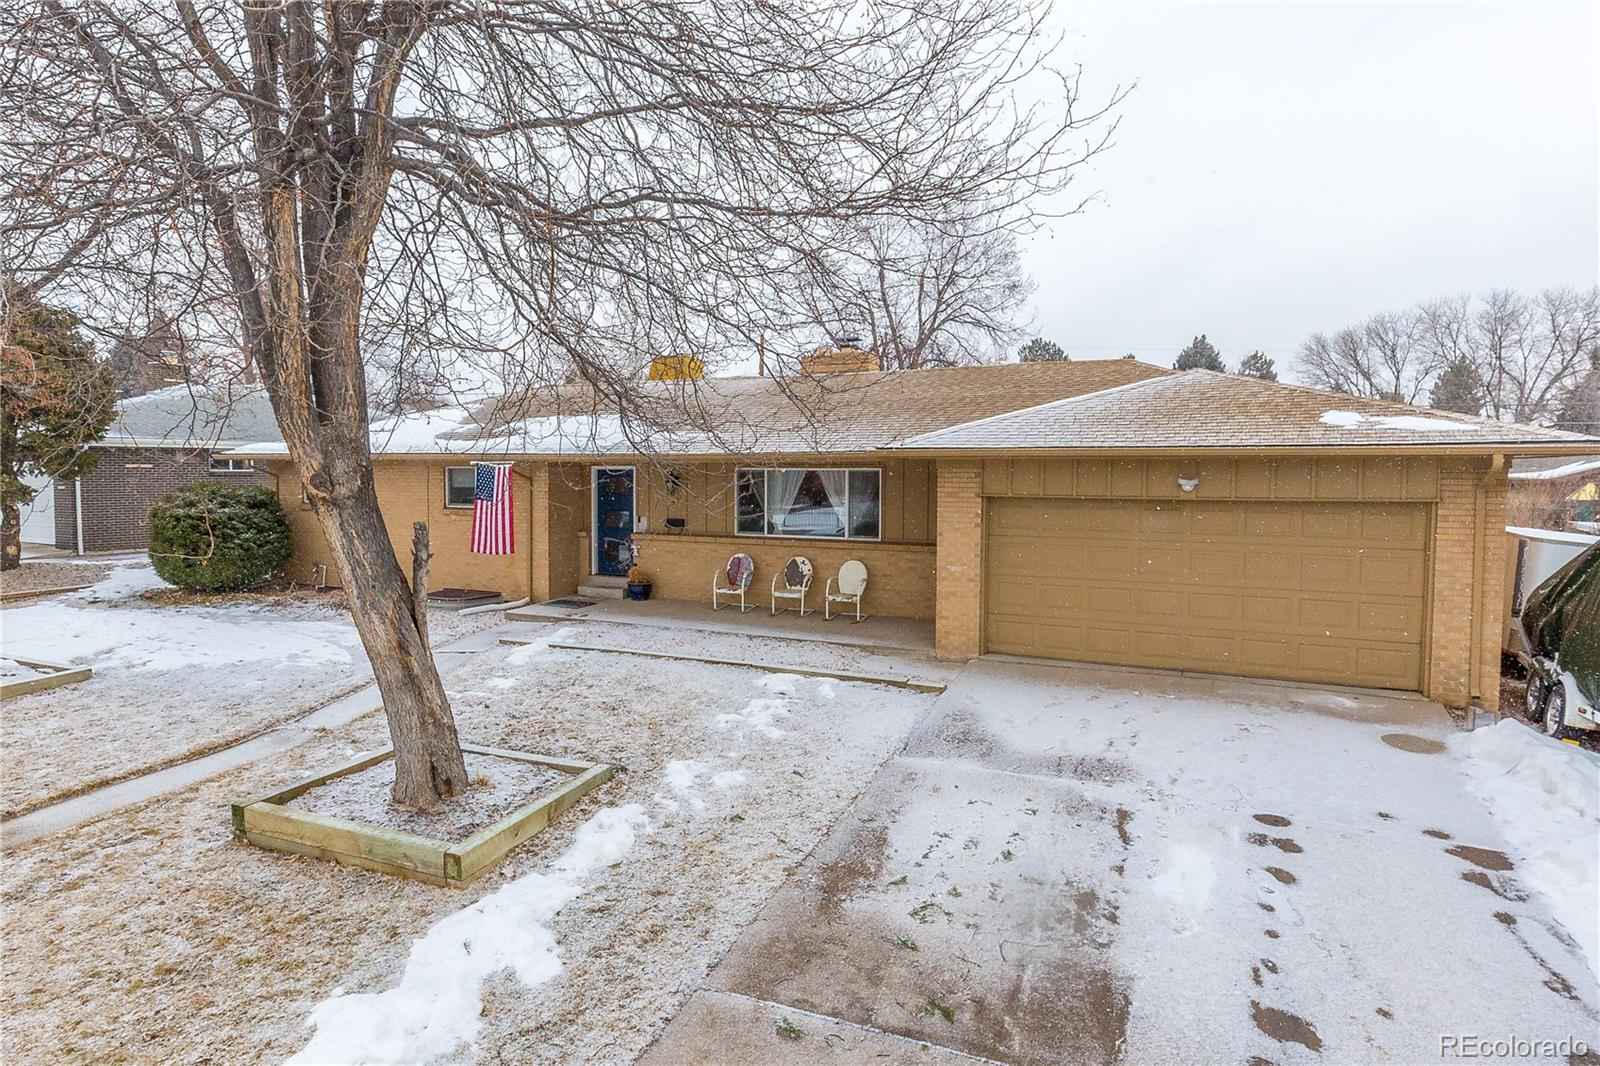 MLS# 3522465 - 1 - 1558 S Gray Street, Lakewood, CO 80232